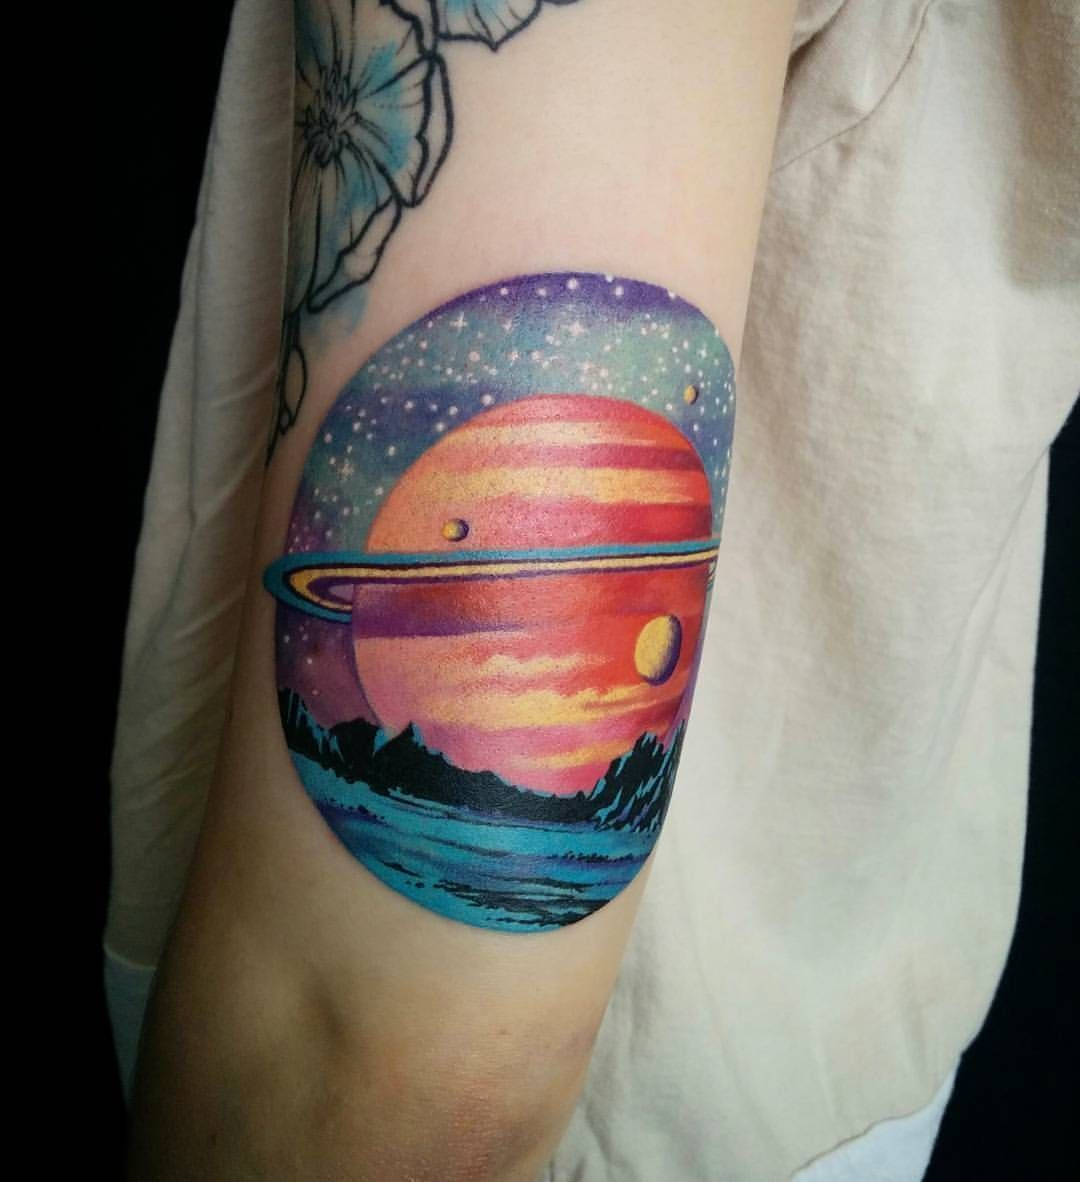 Pin By Mytorius On Believe Tattoo Men: Pin By Margaret Love On Tattoo Ideas